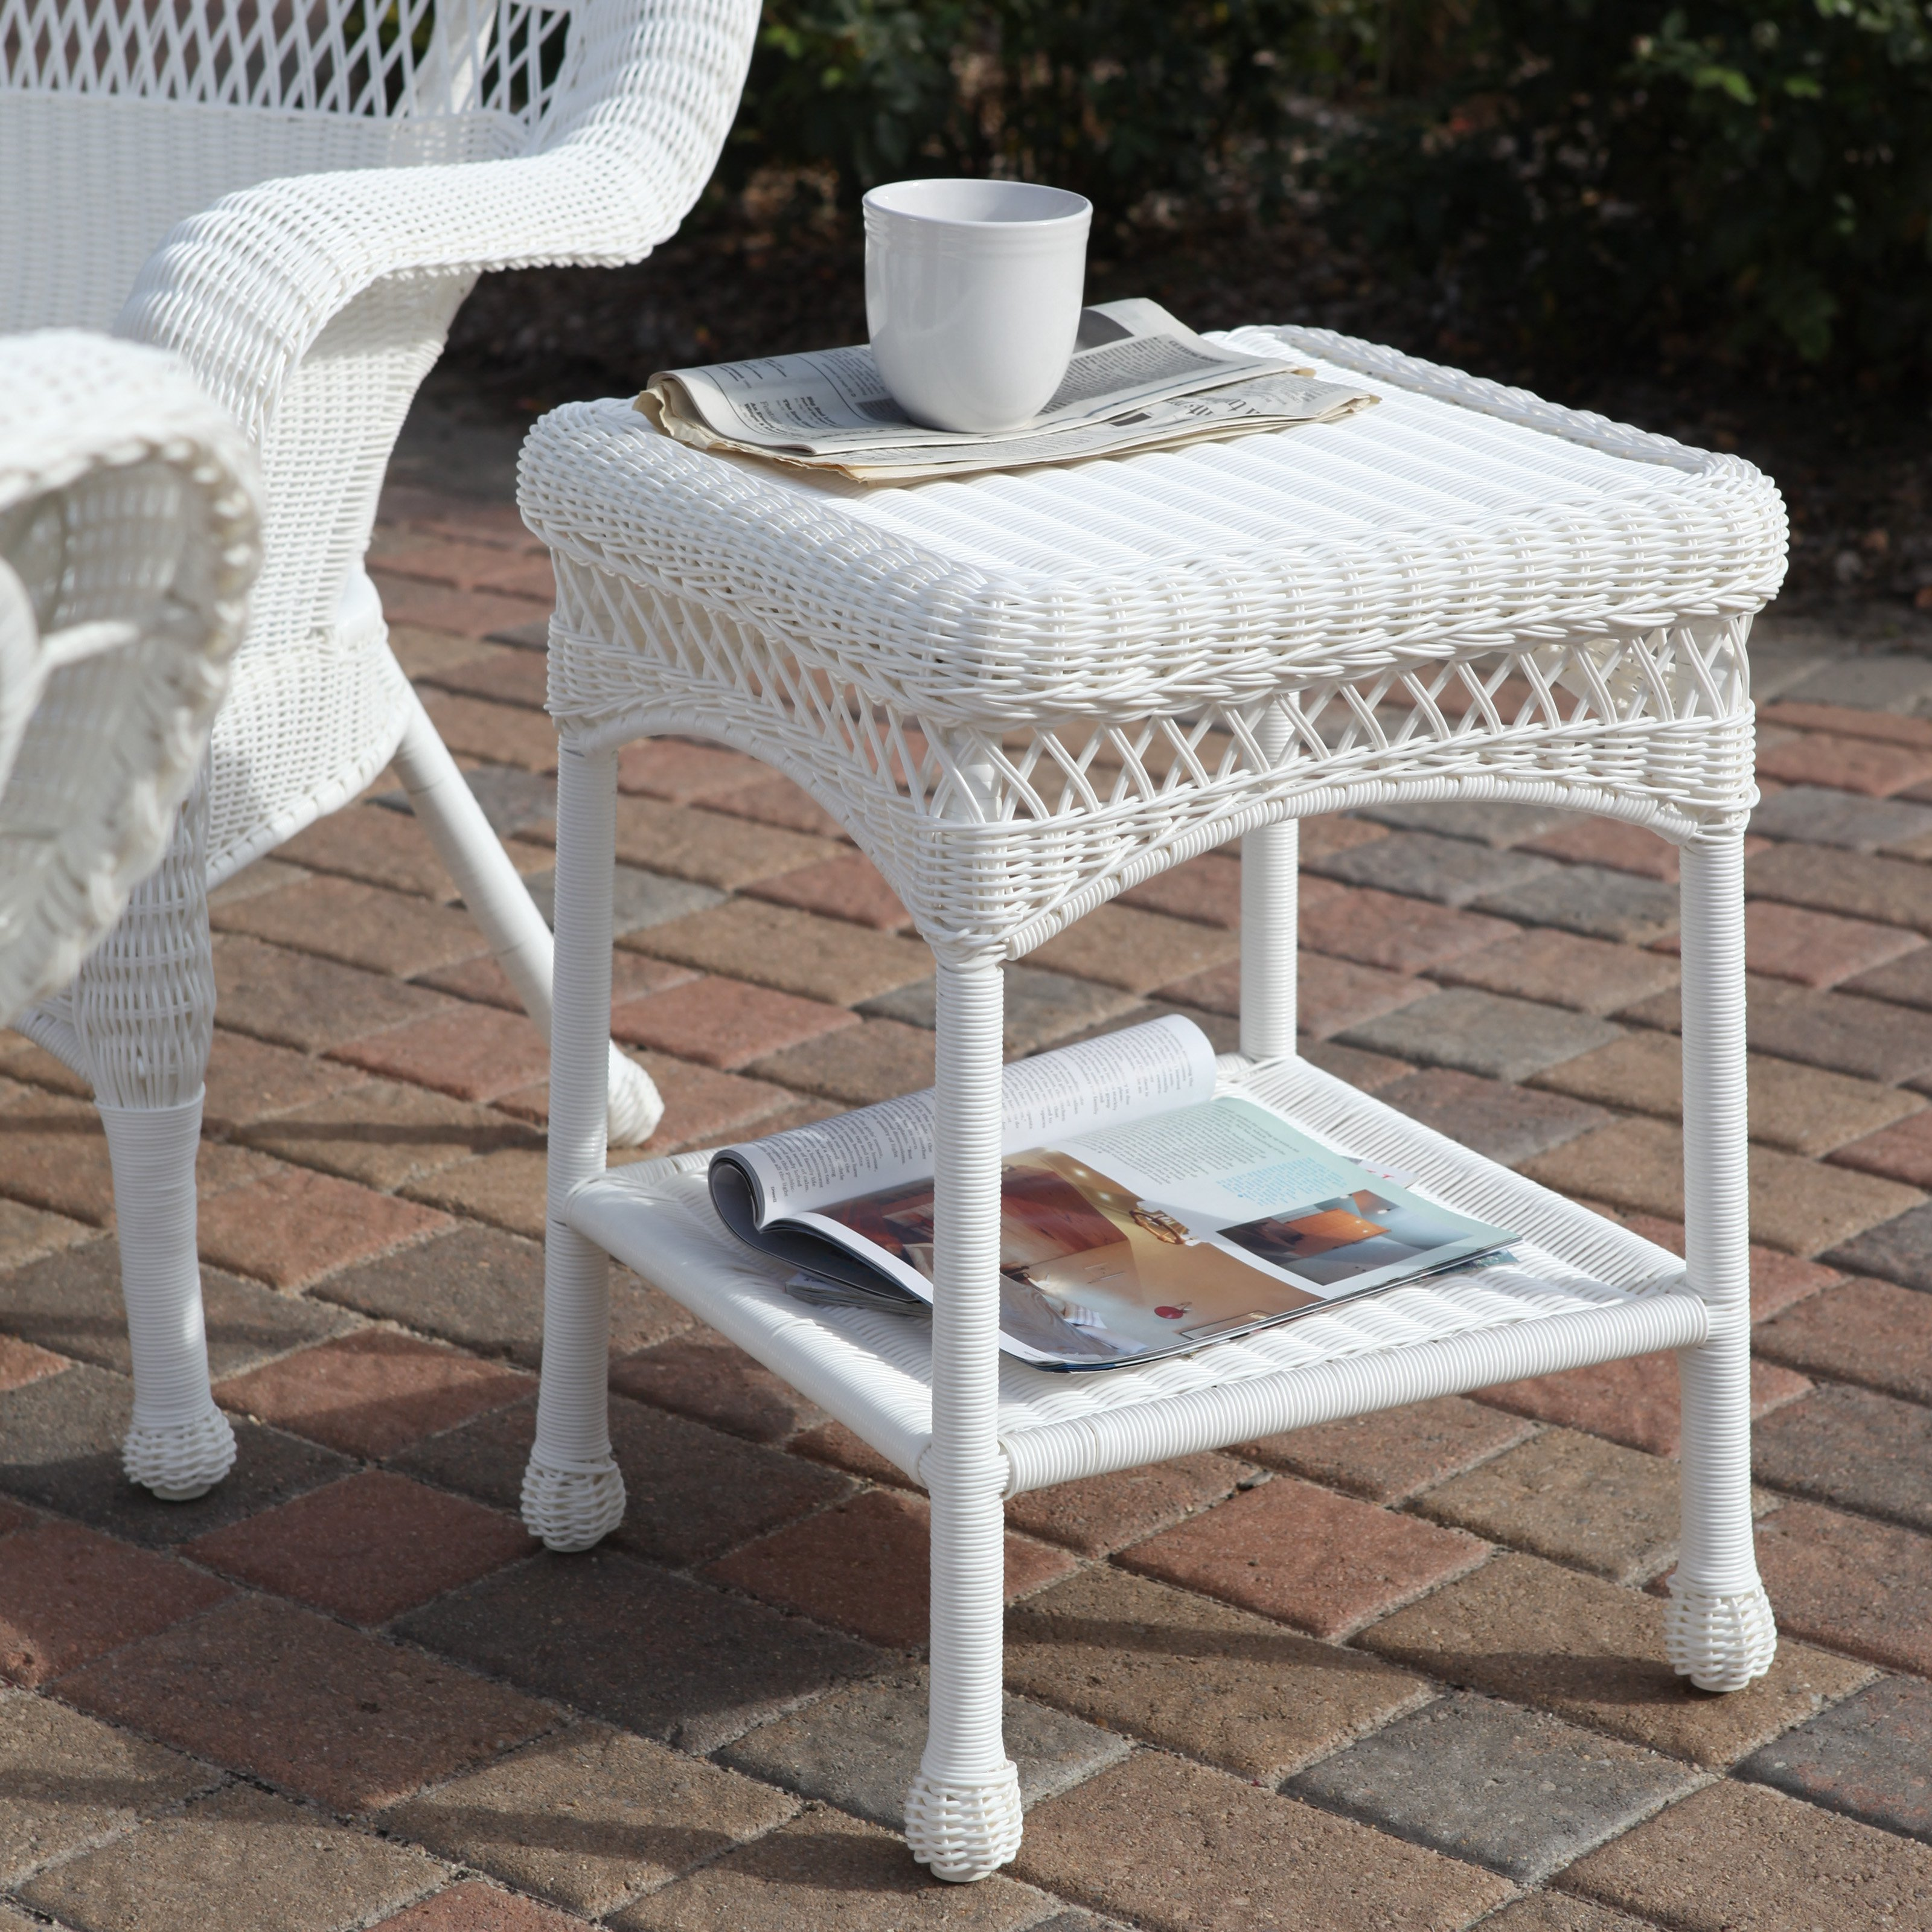 antique mirror side table the fantastic cool white patio end sahara all weather wicker set seats master unfinished accent tall decorative bedside height brown desk lamp with usb